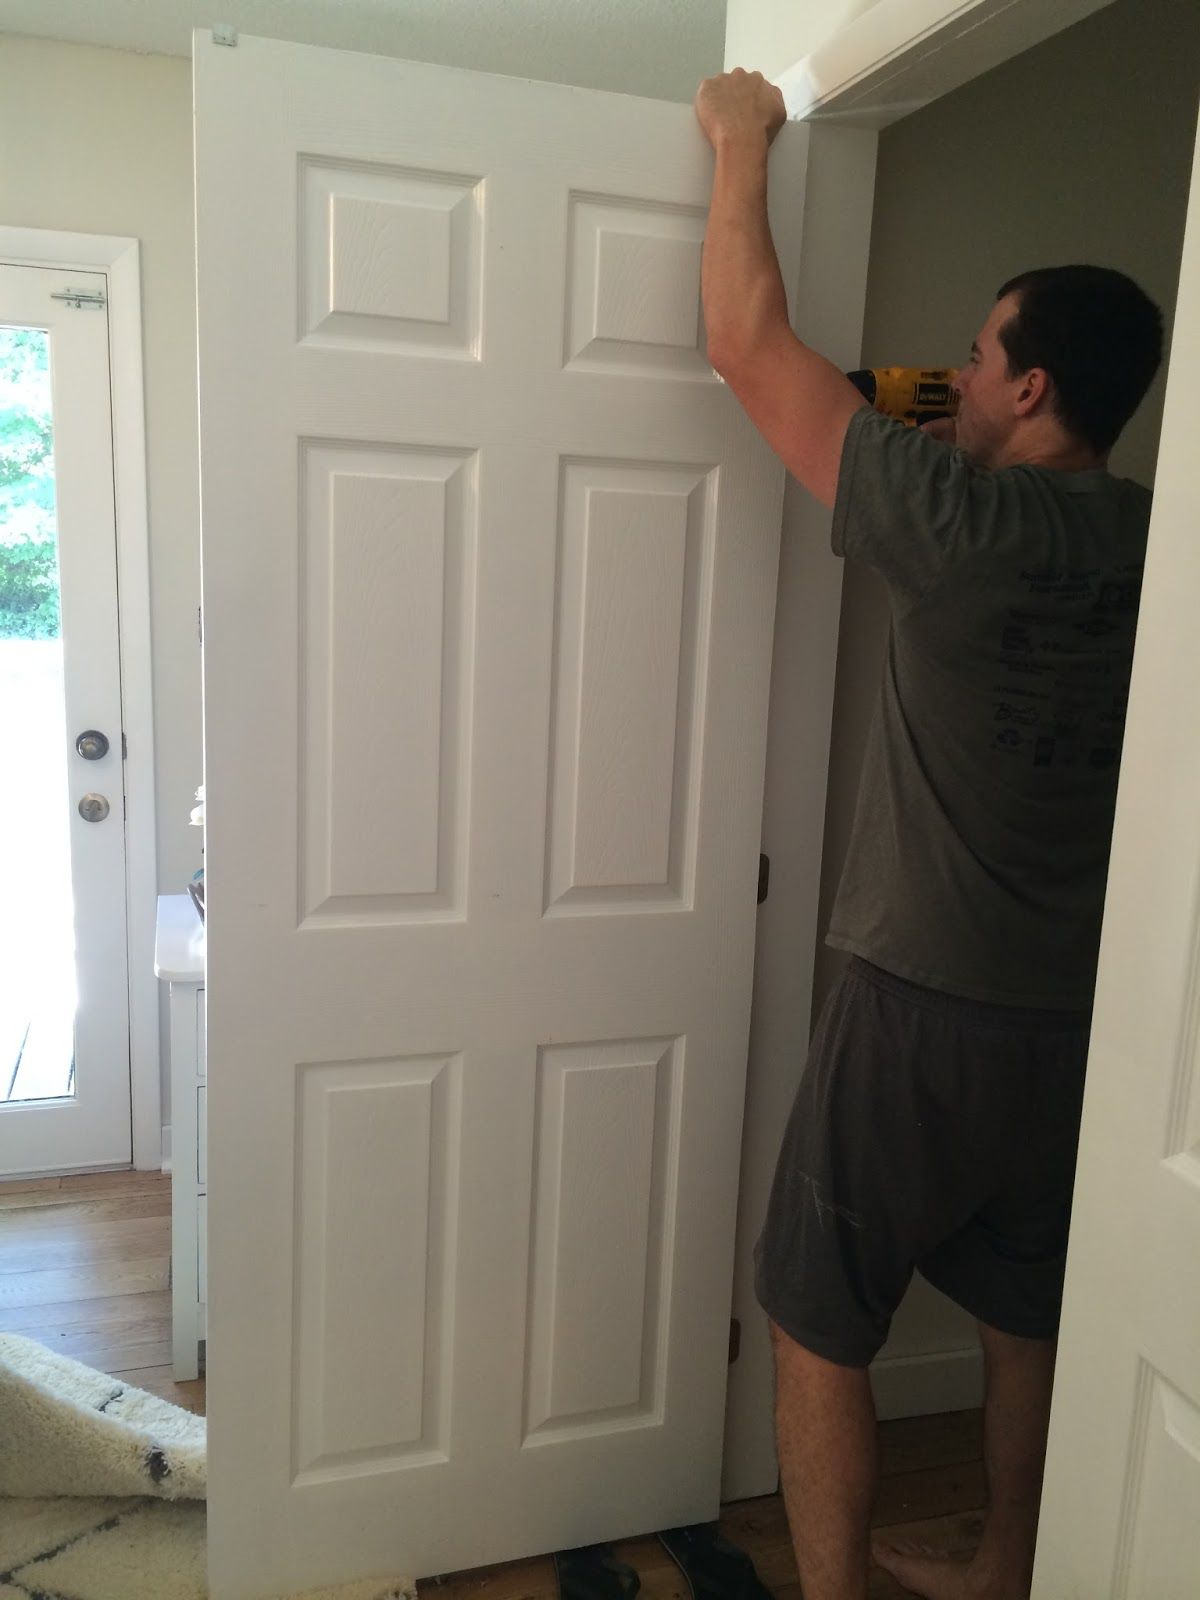 DIY Closet Door Update How To Your Old Bi Fold Doors Modern French Love The Little Added Touch Of Pulls Too